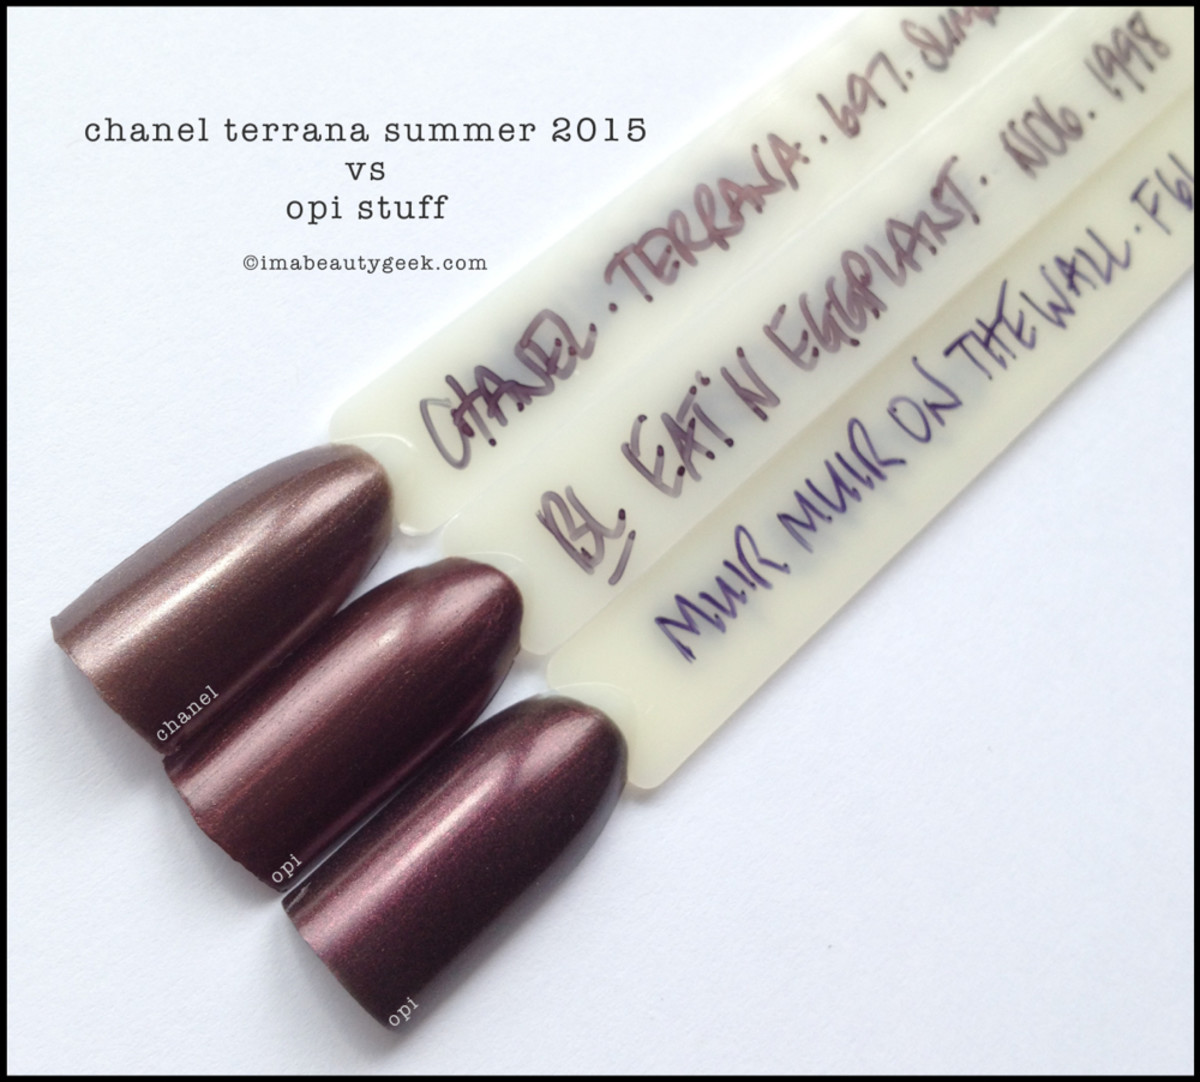 Chanel Terrana Comparison Swatch vs OPI